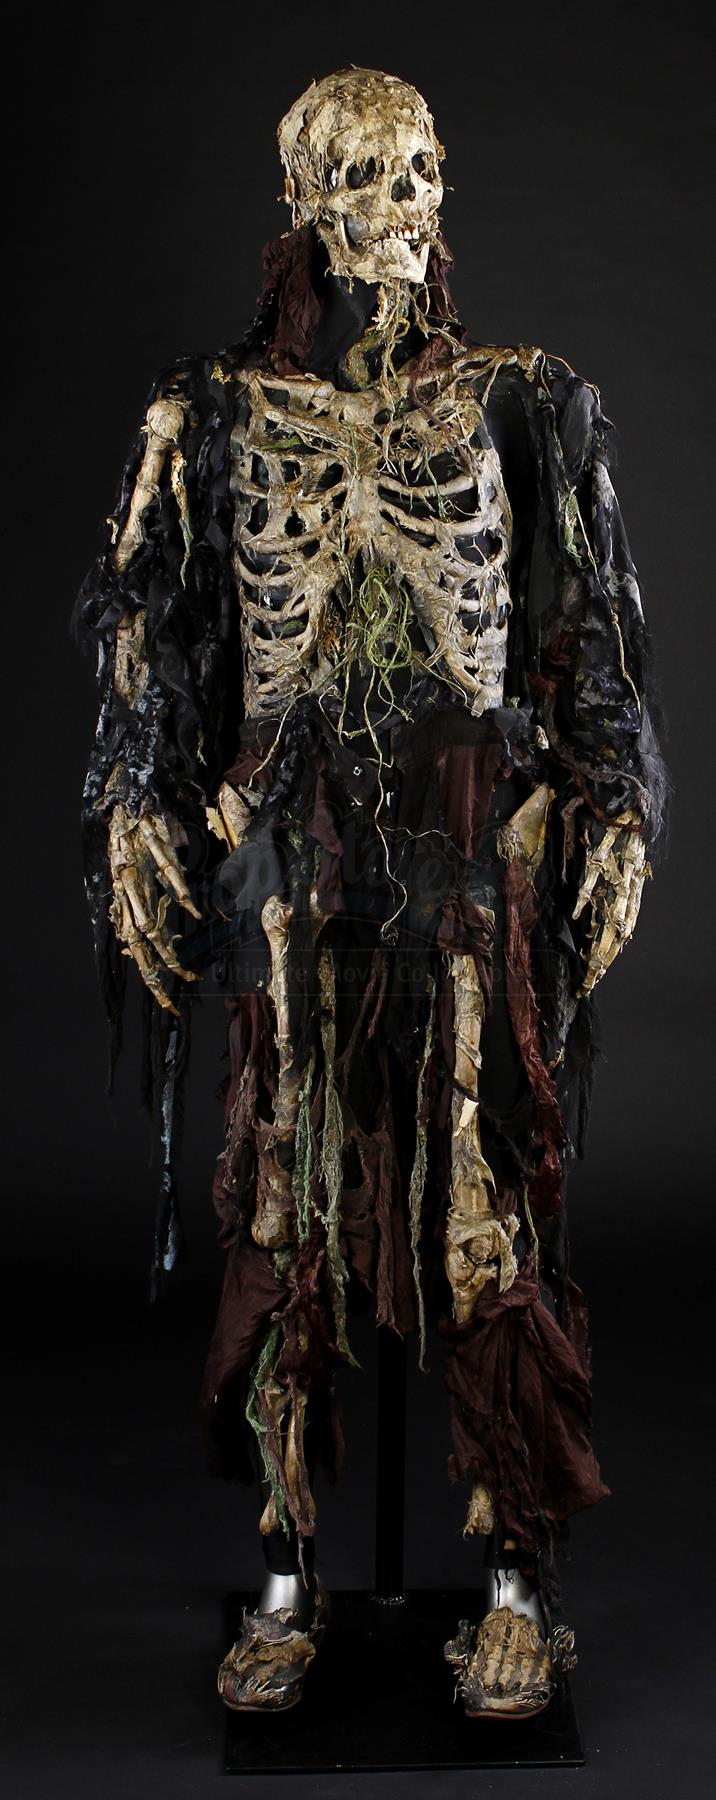 The Haunted Mansion 2003 Zombie Jeremy Gilbreath Costume Current Price 4250